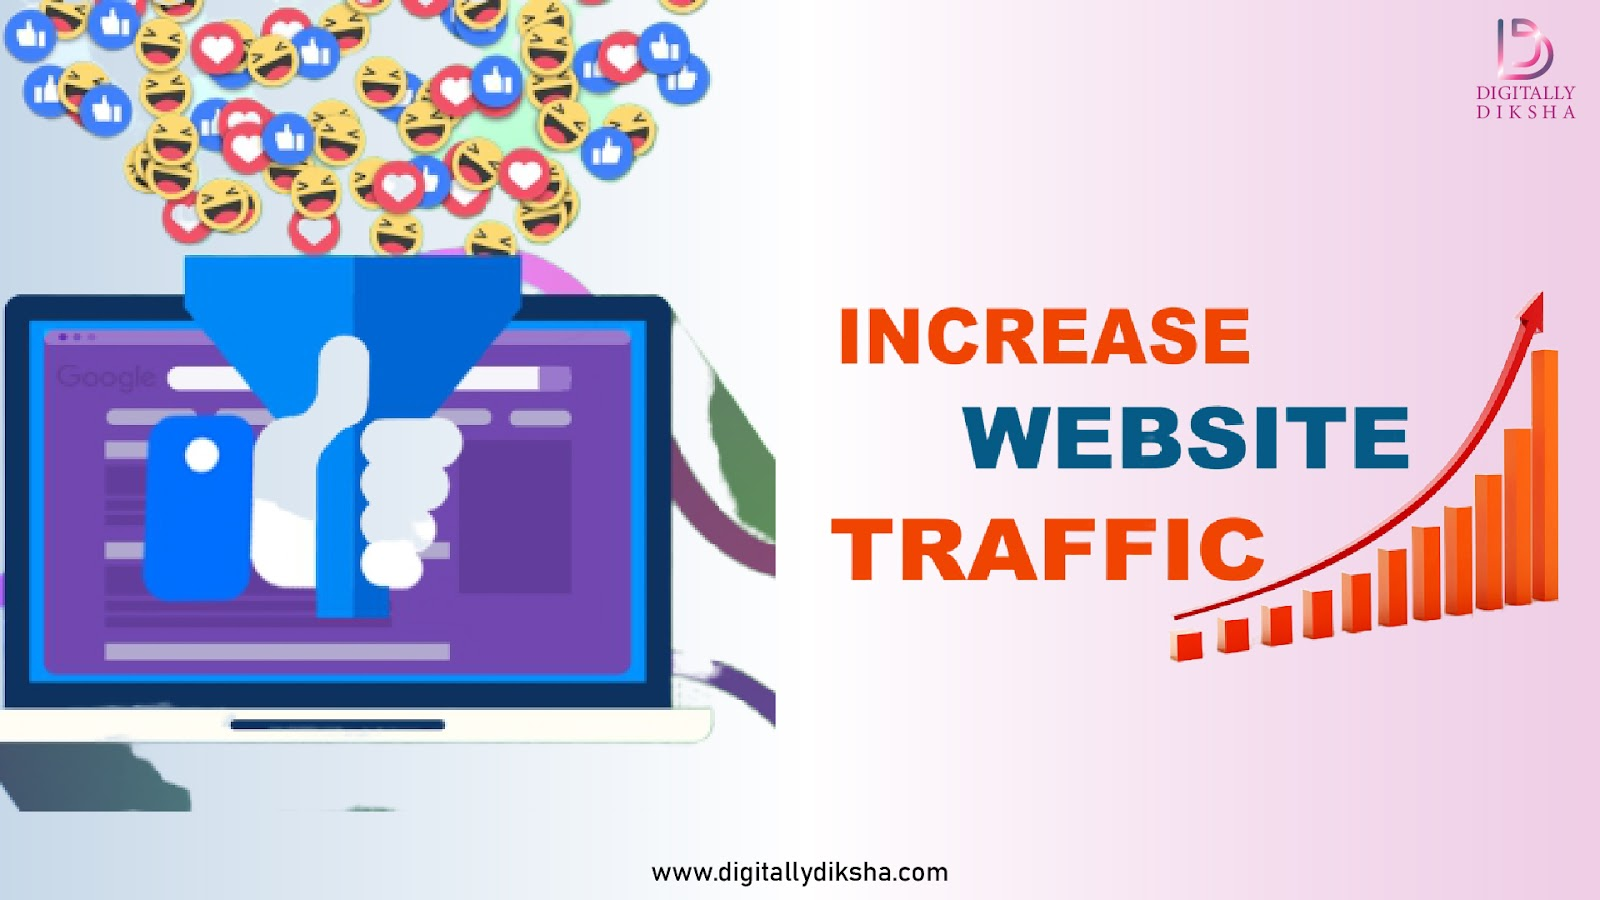 Drive Traffic to Your Site